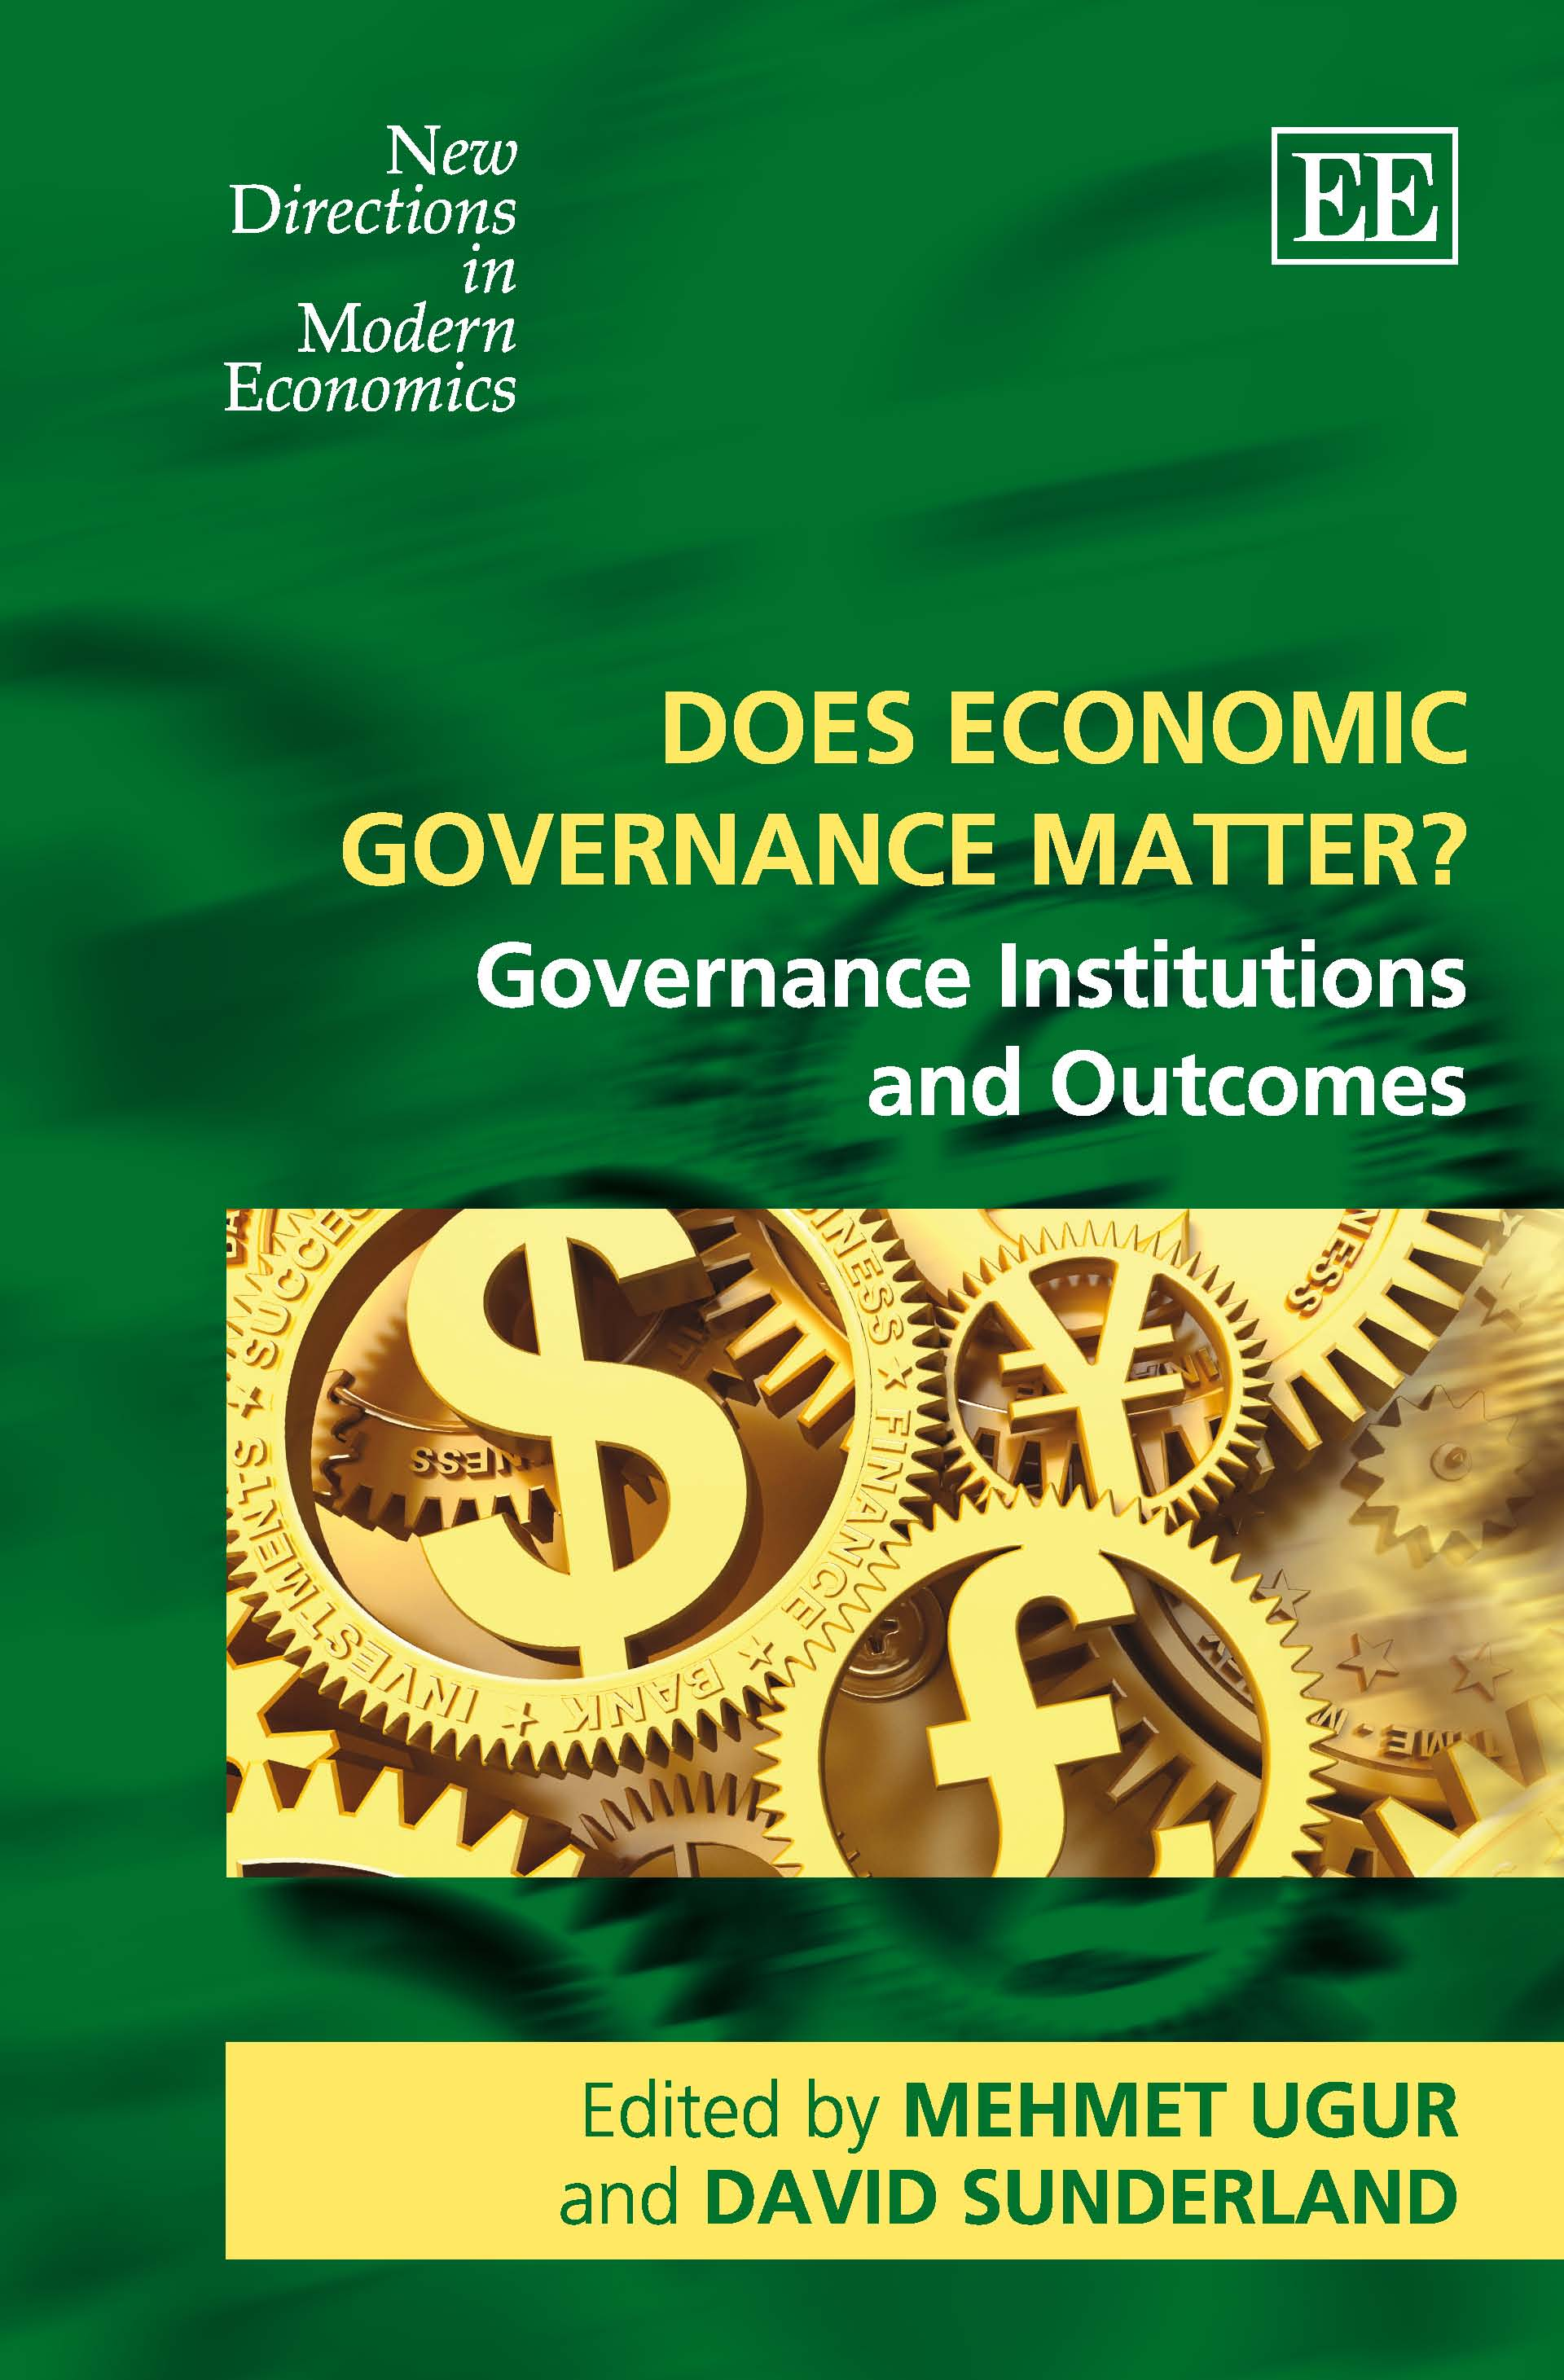 Does Economic Governance Matter?